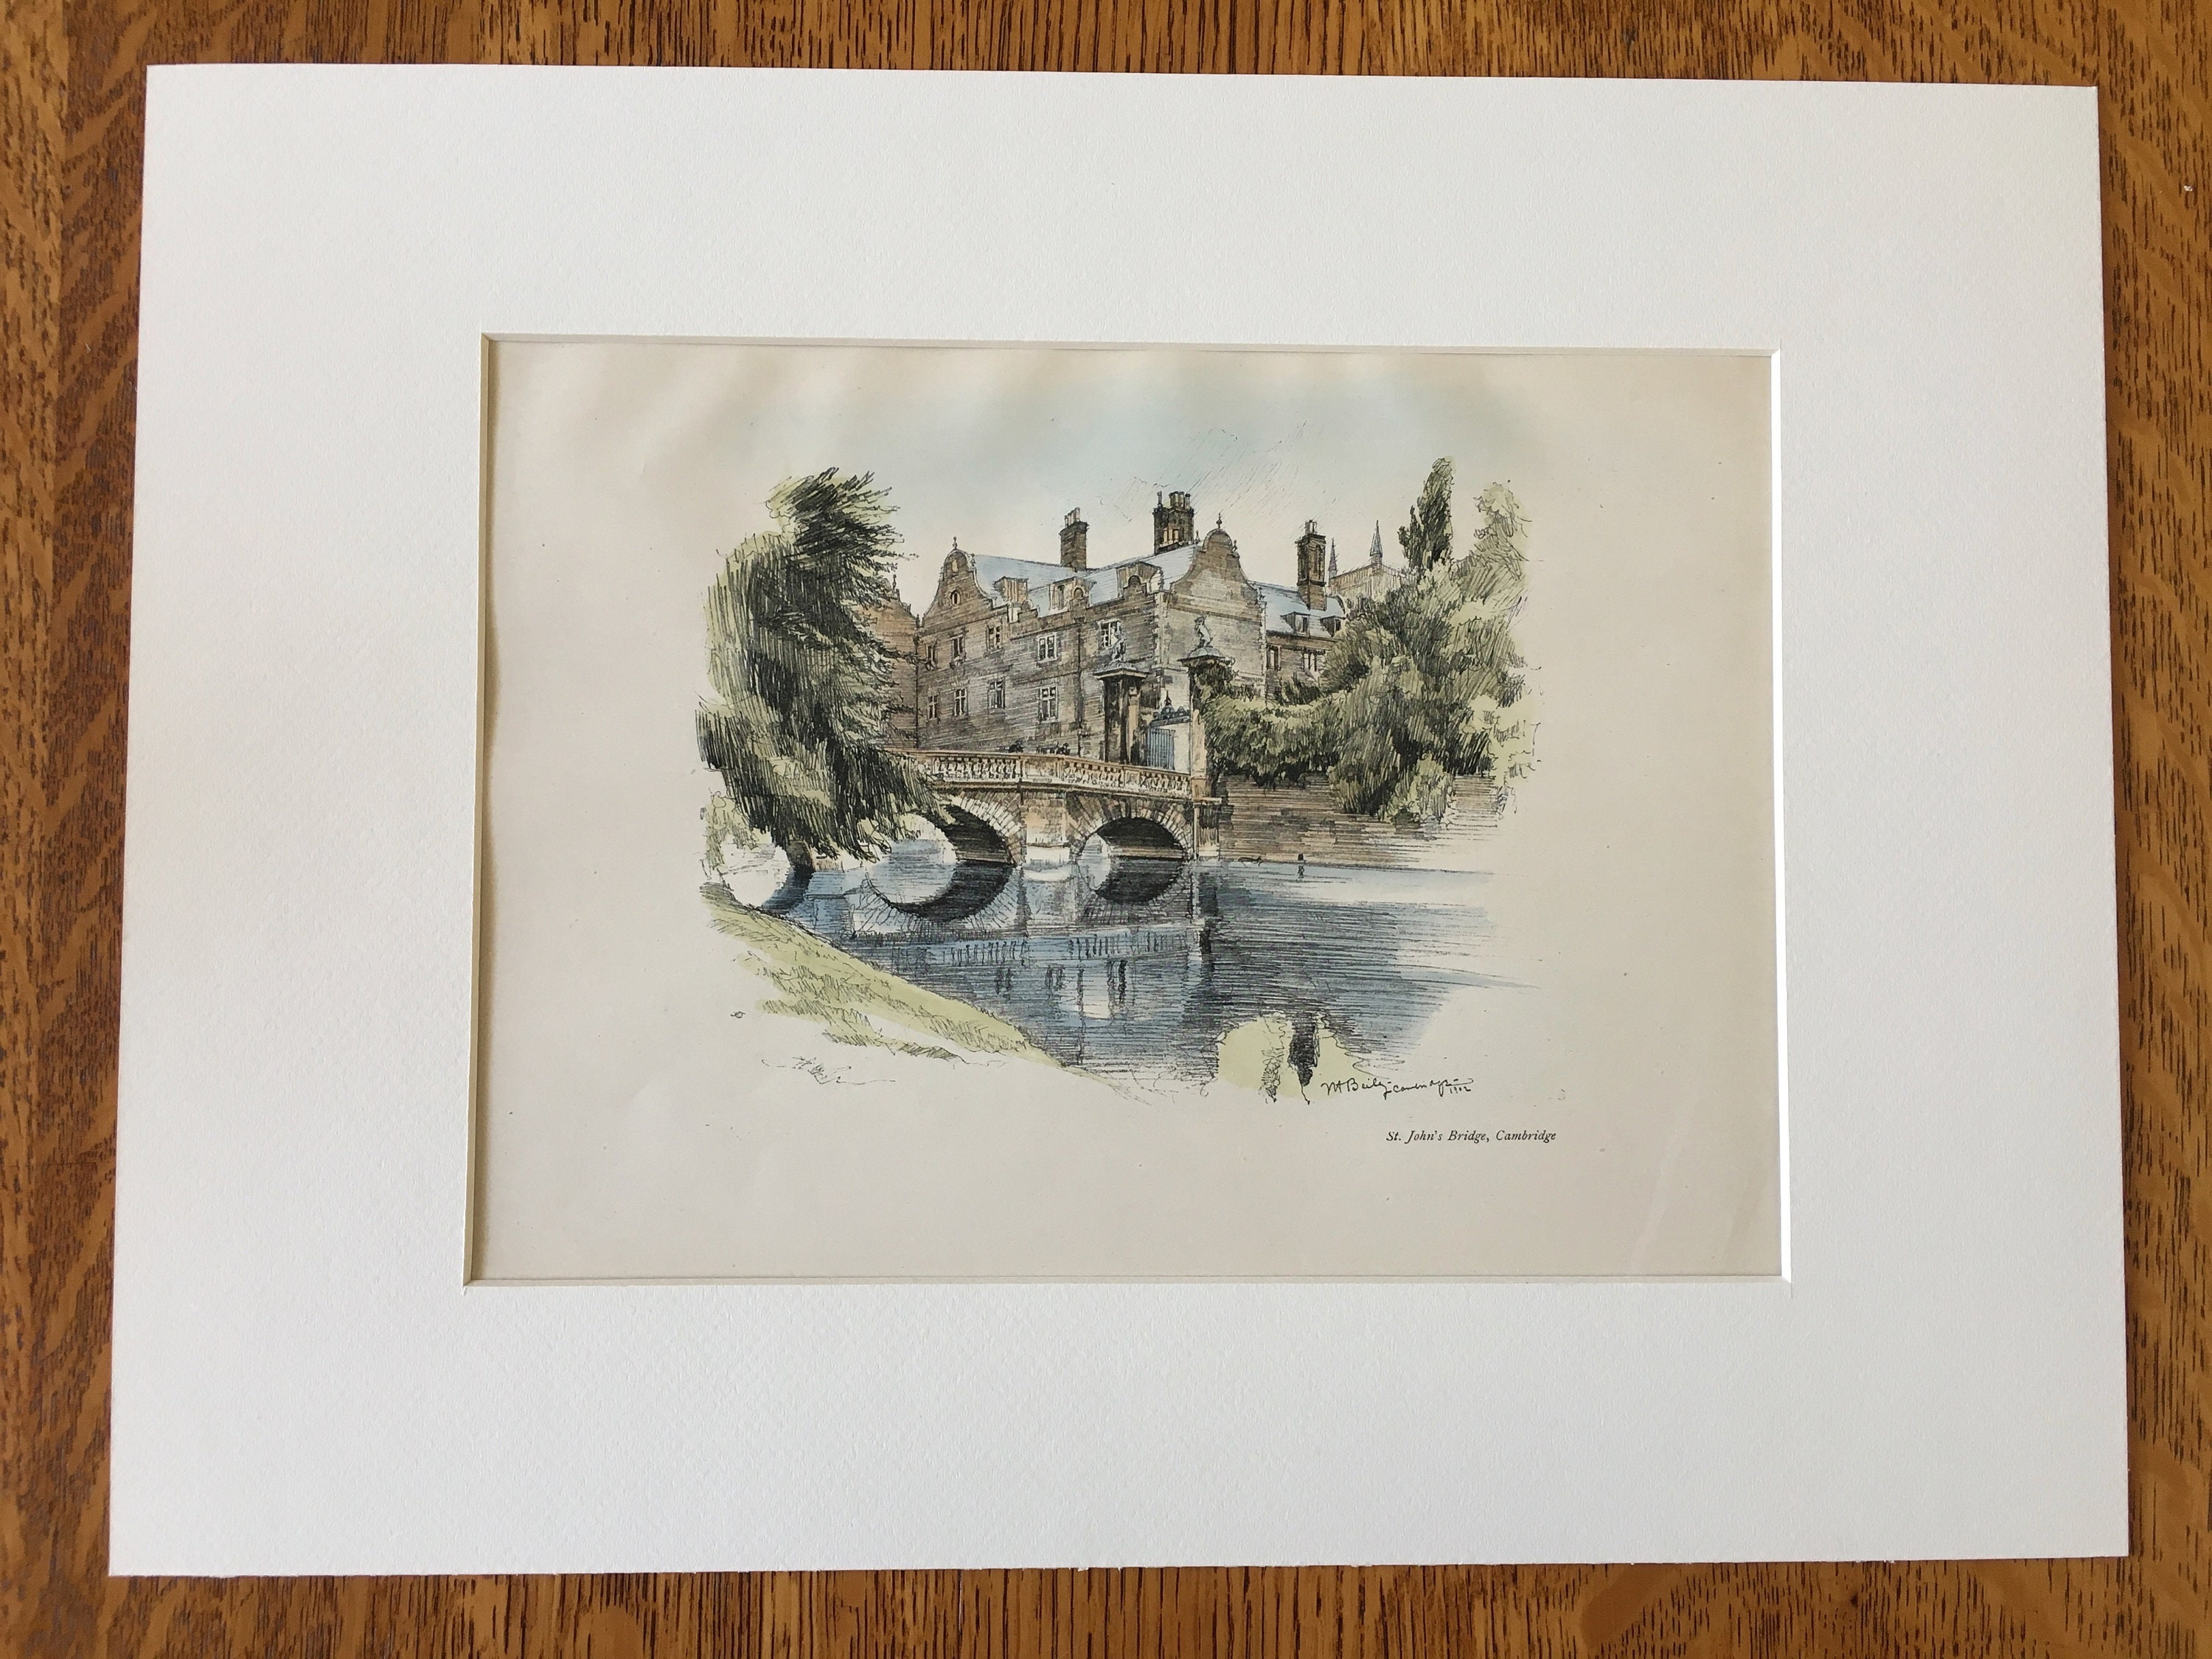 UK Architects Original Hand Colored Vintage Clock Tower Trinity College Architecture 1902 Drawn by Vernon Howe Bailey Cambridge